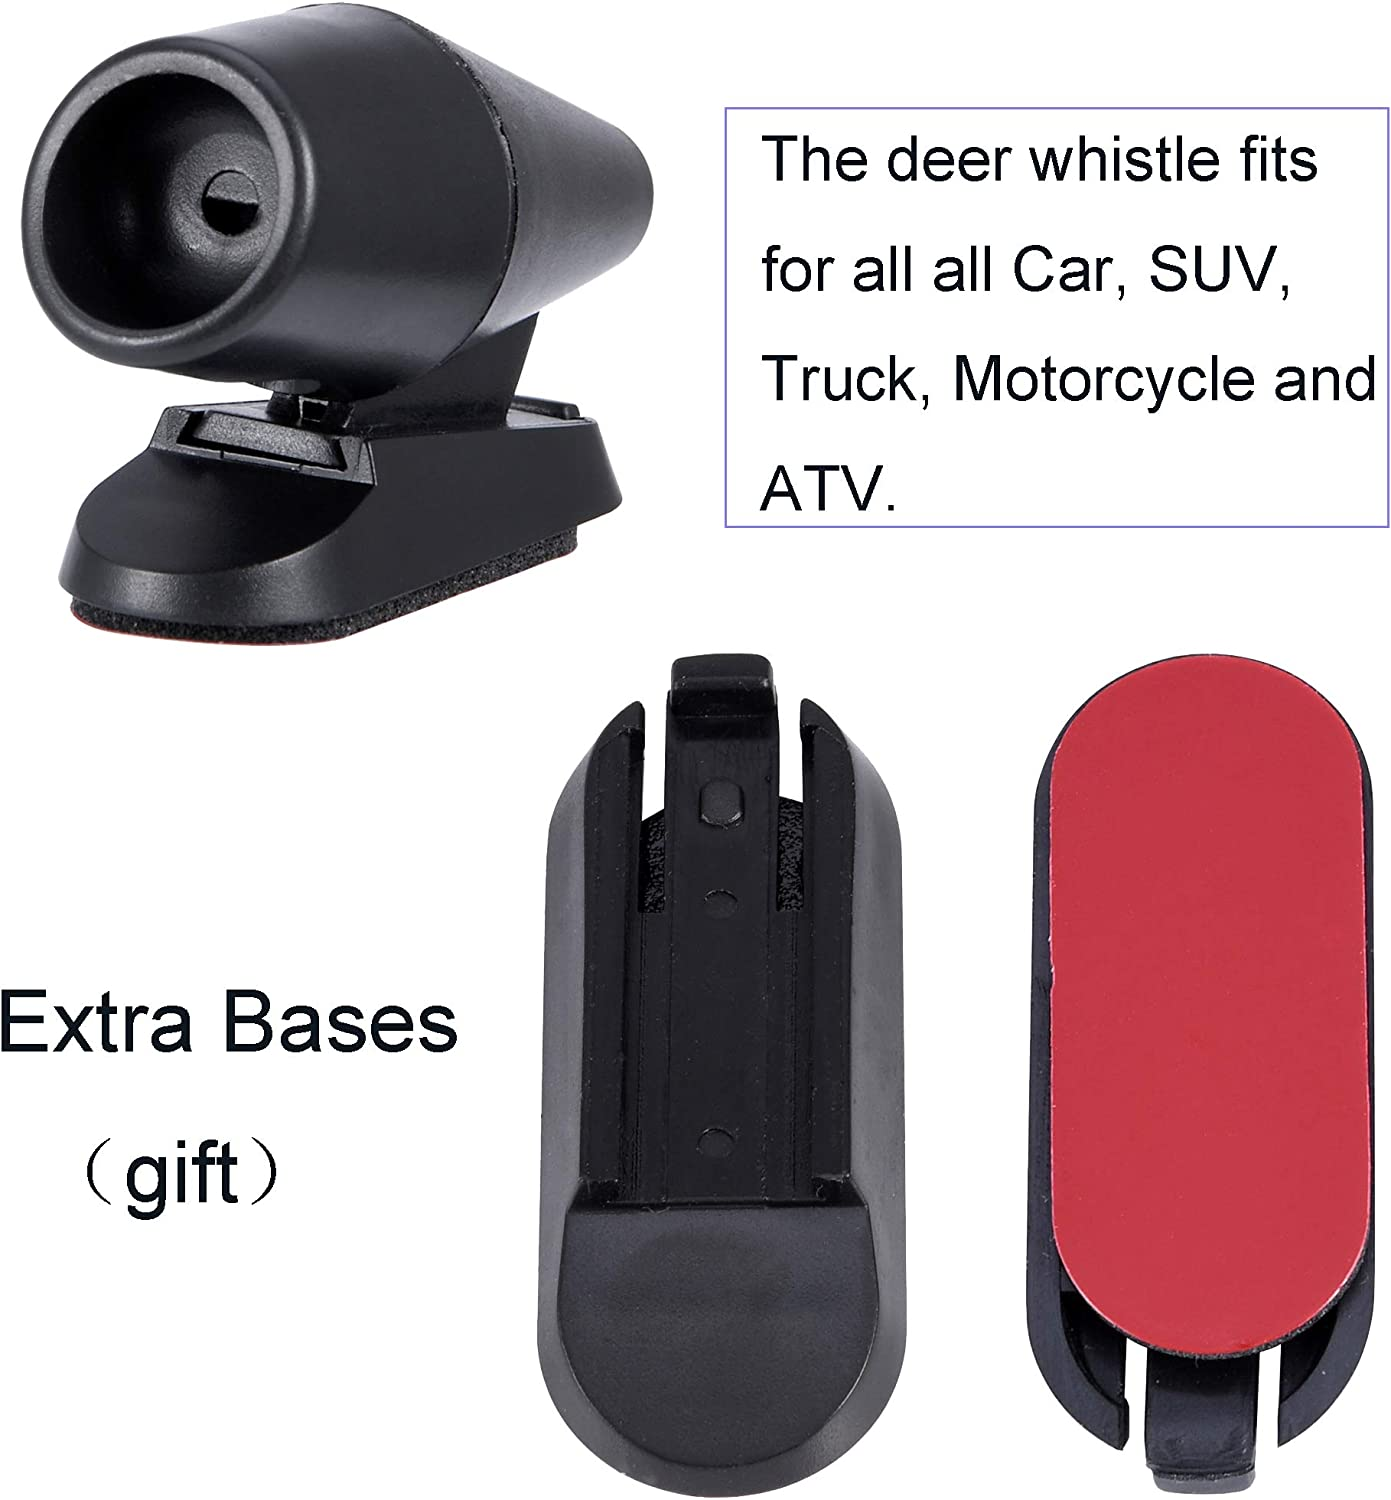 BingSnow 4 Pack Deer Whistles for Car with 4 Pack Extra Bases and Carry Product Instruction 2 Pack Ultrasonic Whistles and 2 Pack Wind Whistles